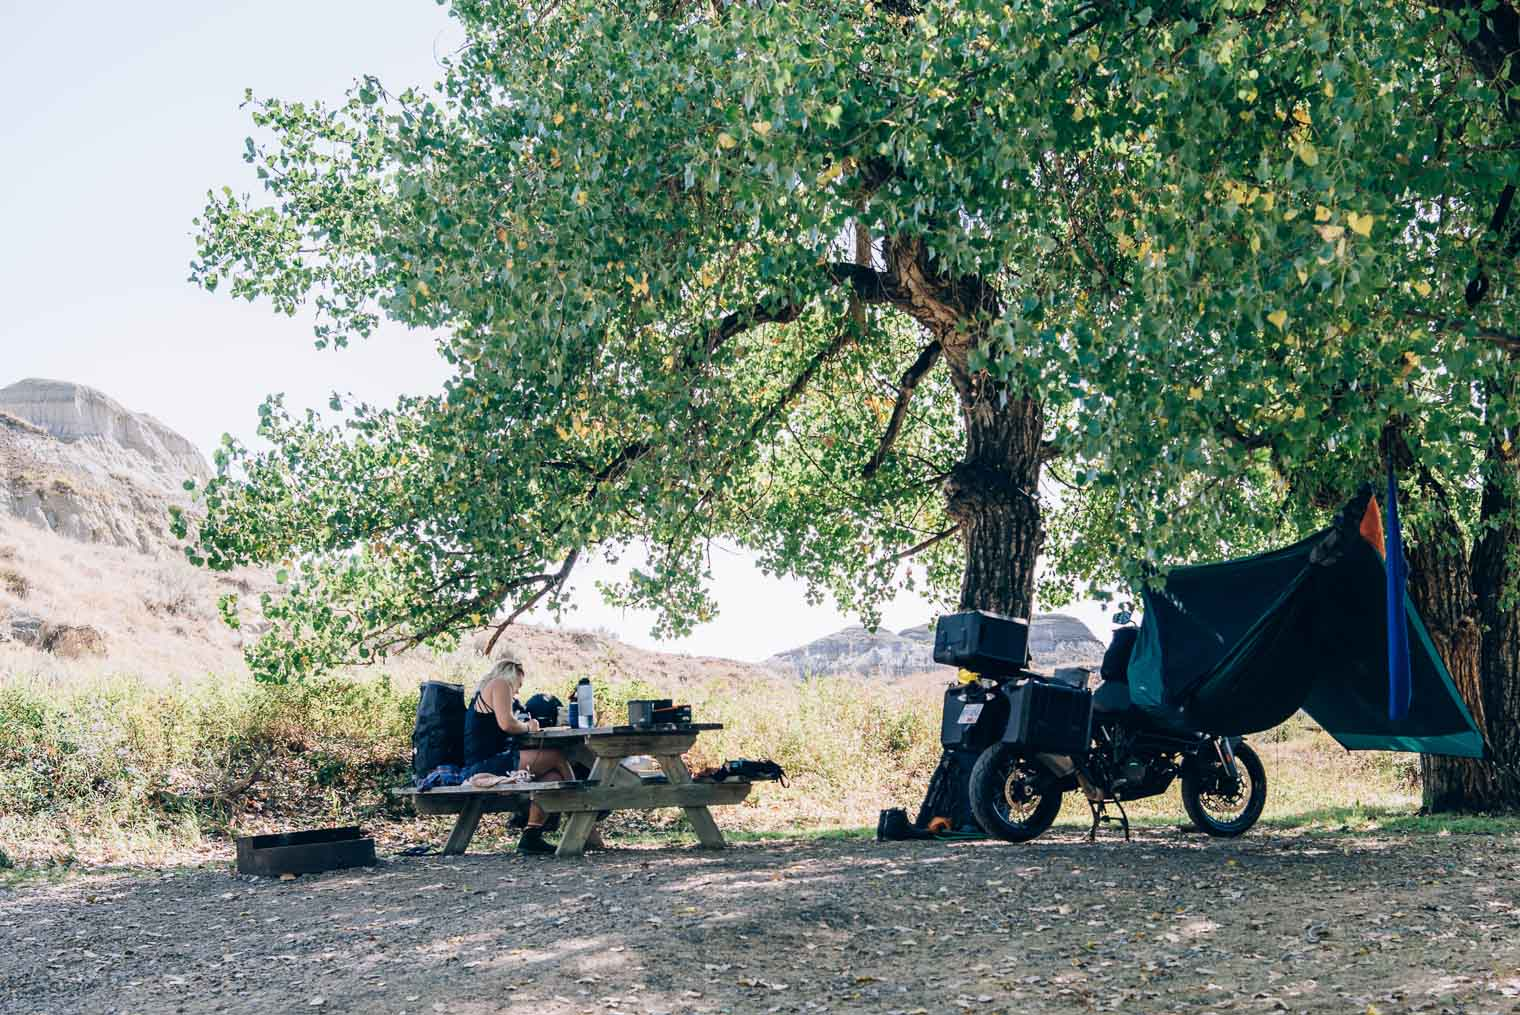 A campground with a hammock, motorcycle, and woman sitting at a picnic table